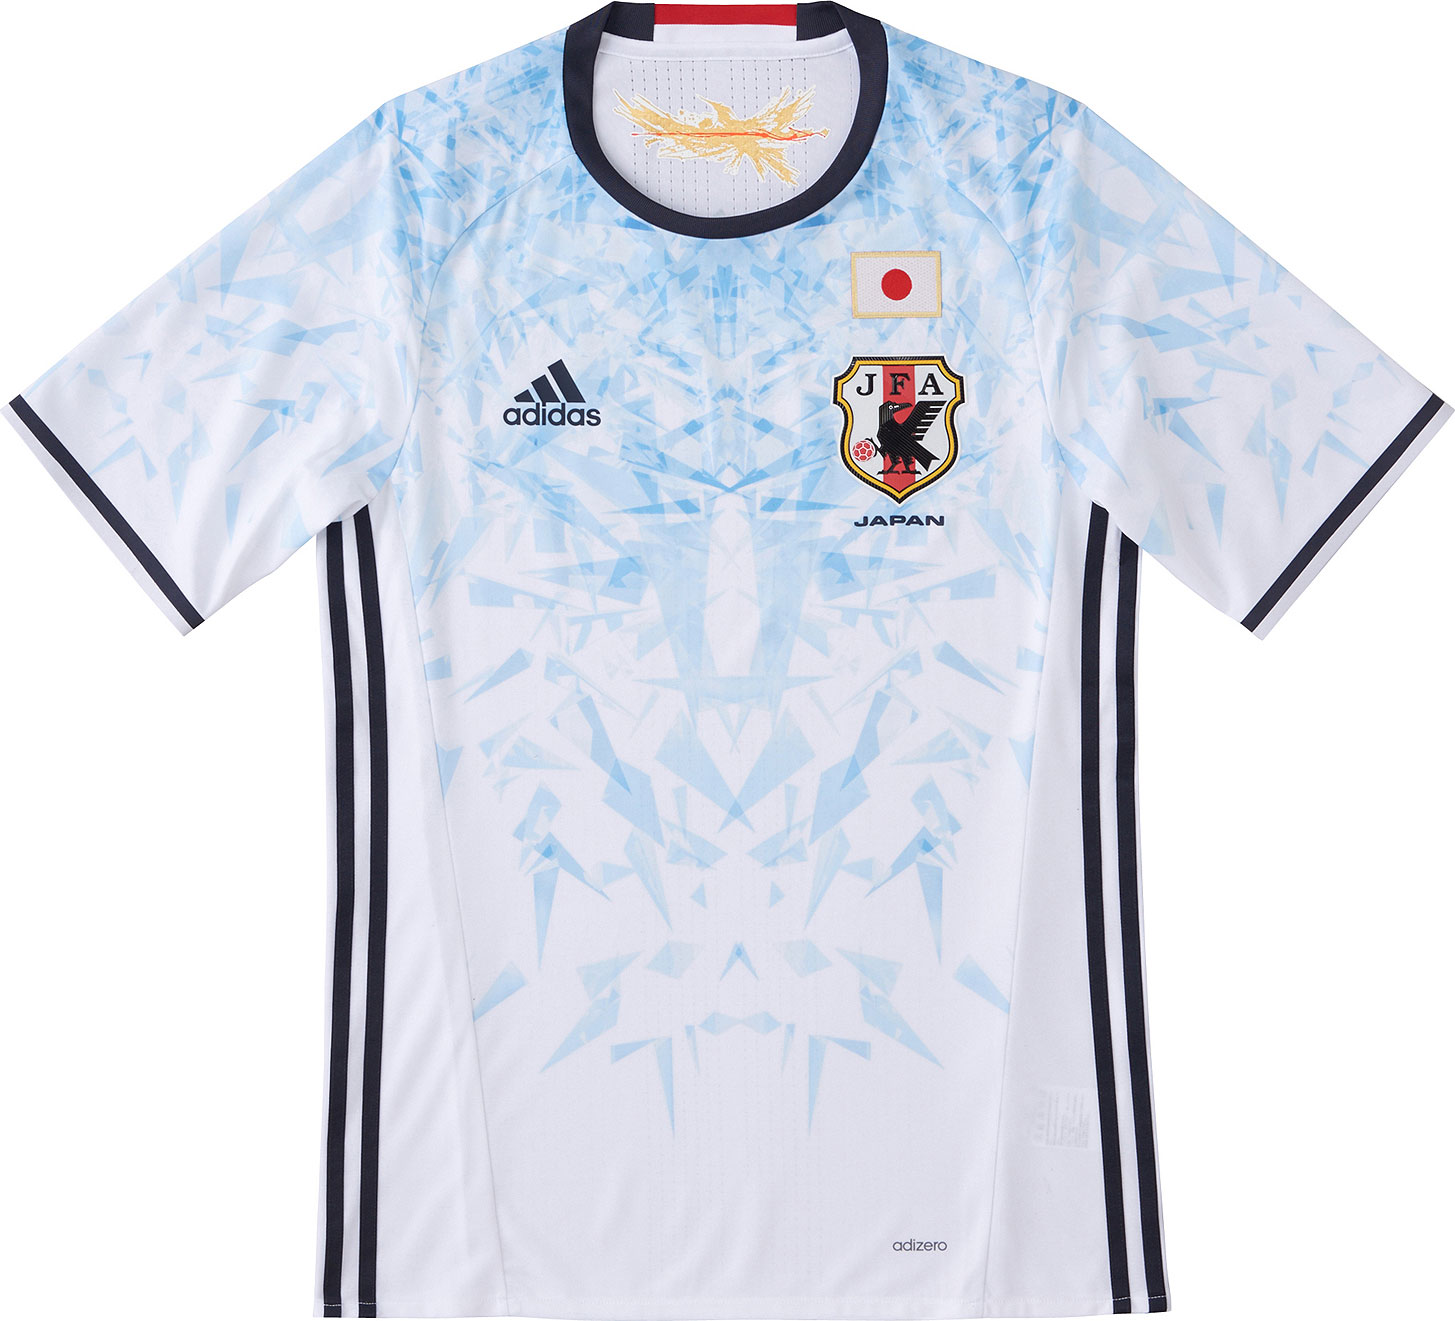 Adidas Japan 2016 Home and Away Jerseys 3c52d7db5